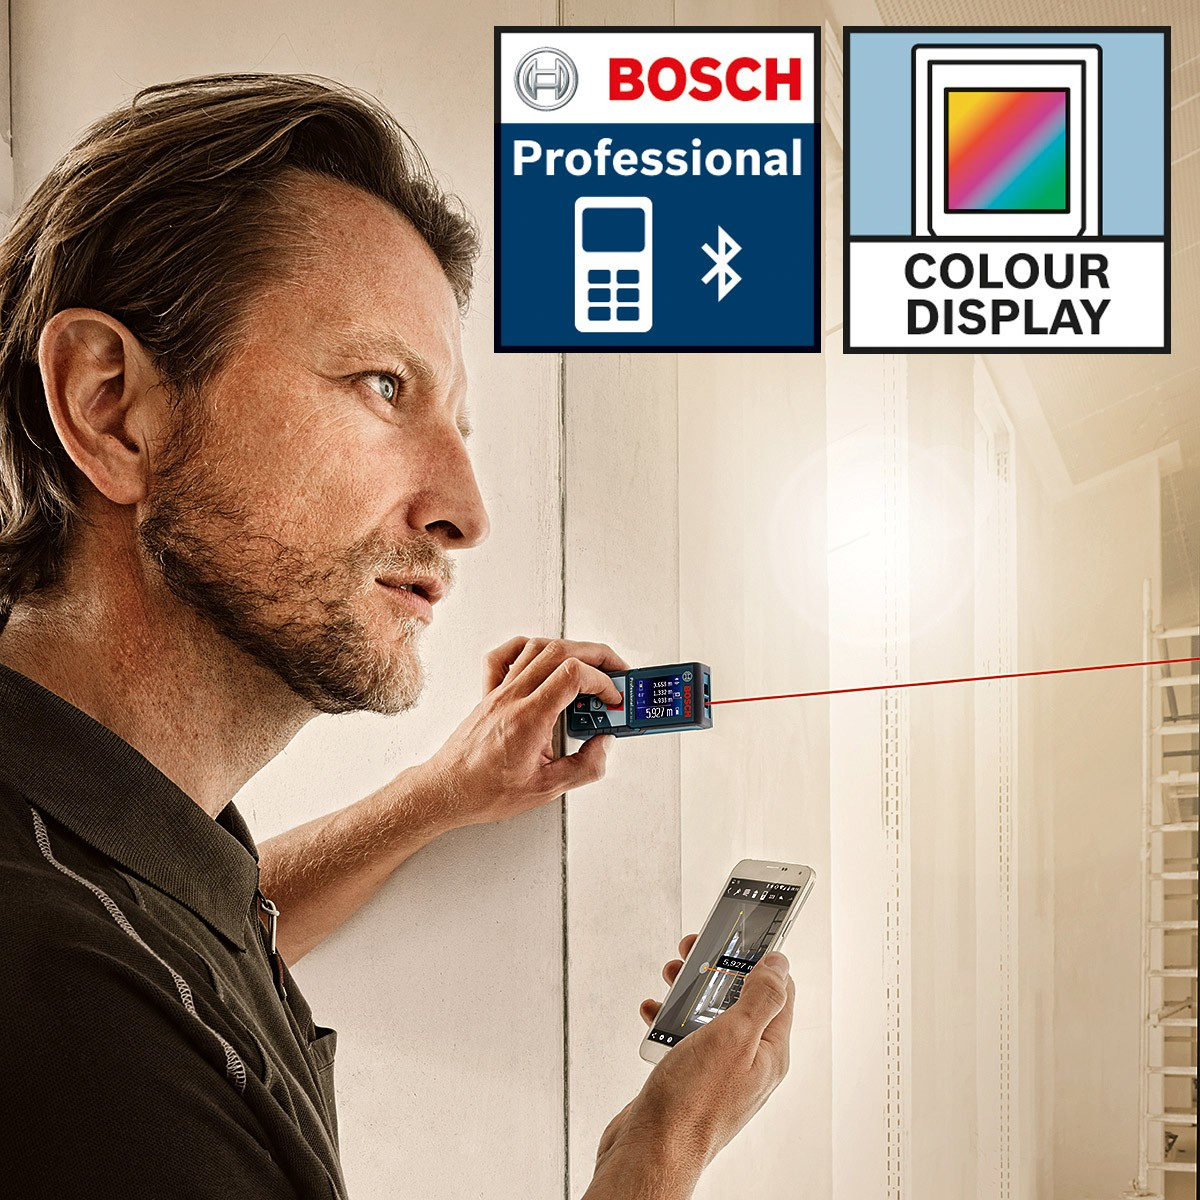 bosch glm 50 c professional laser rangefinder powertool world. Black Bedroom Furniture Sets. Home Design Ideas